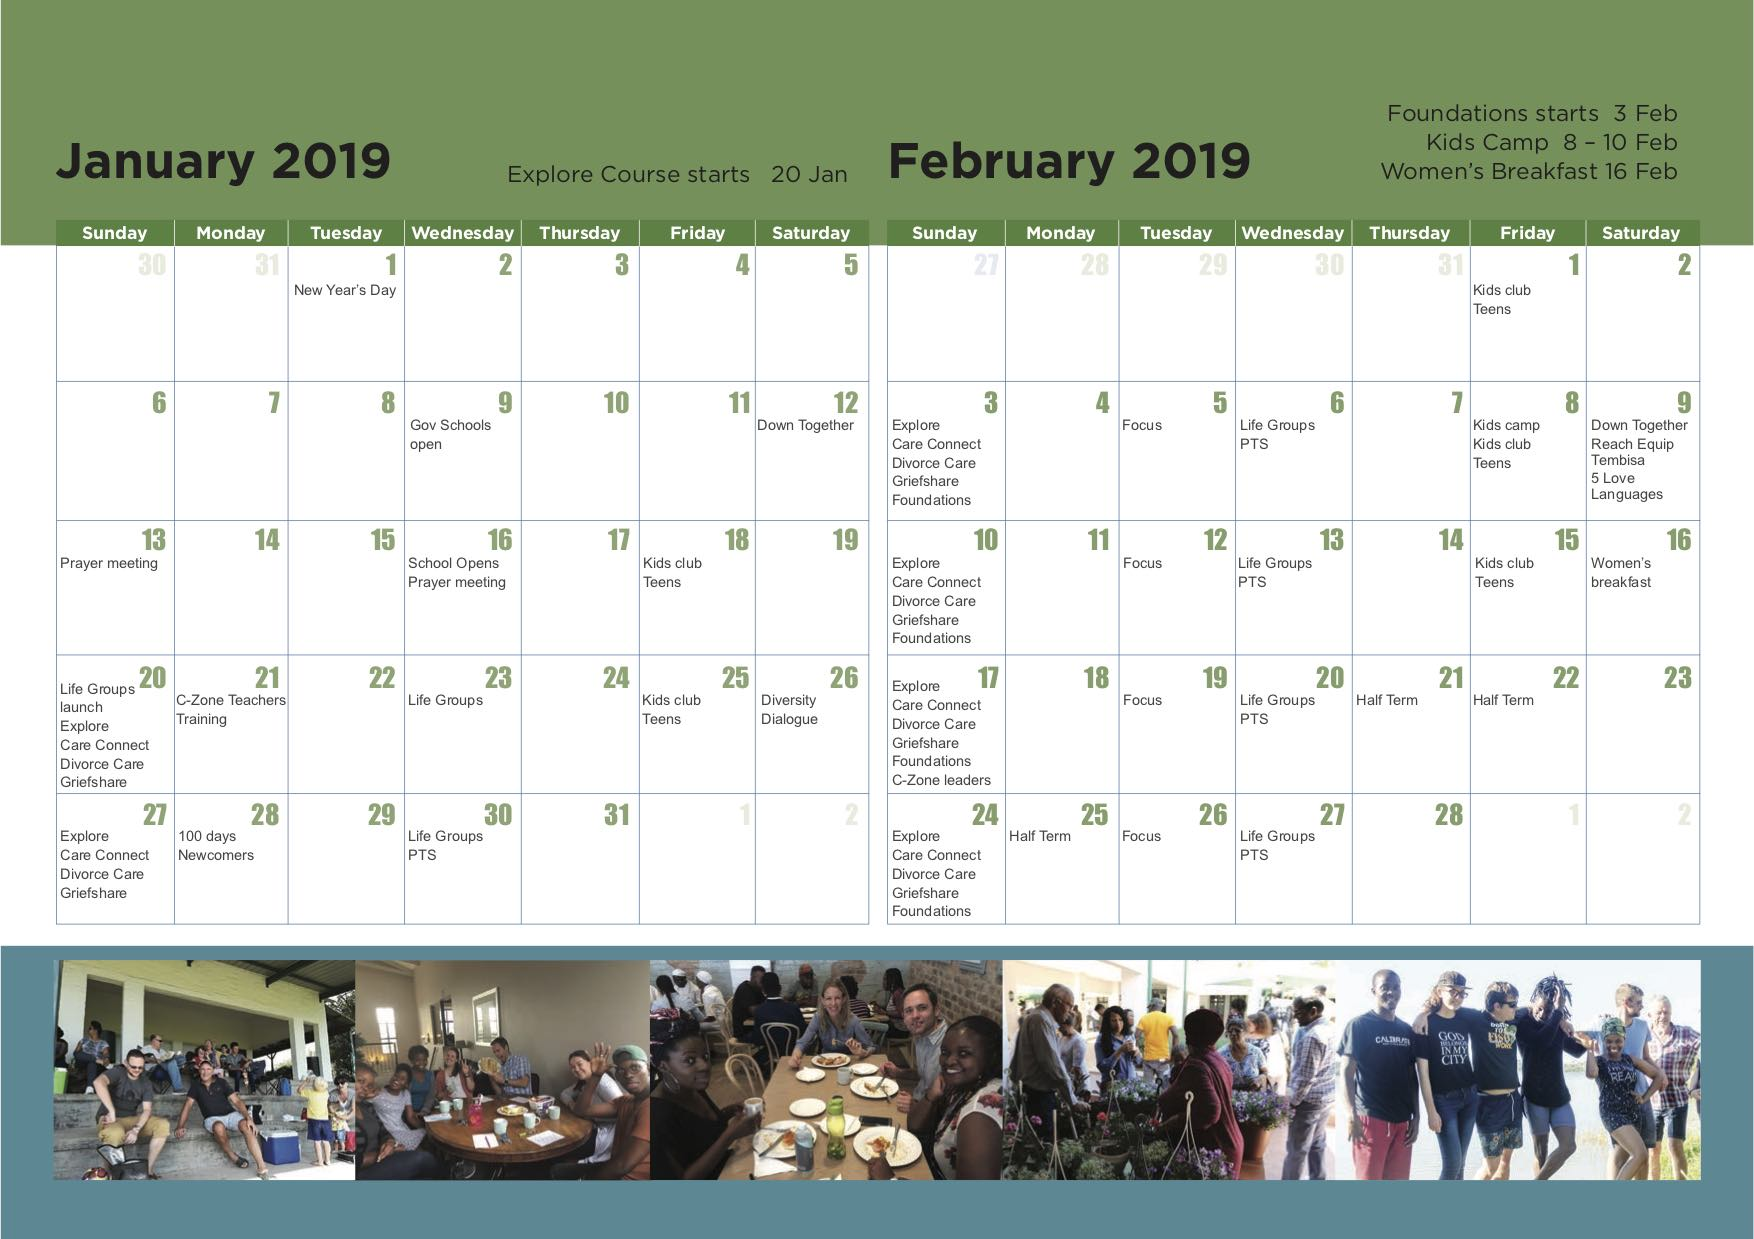 3. CCM calendar 2019 - January and February